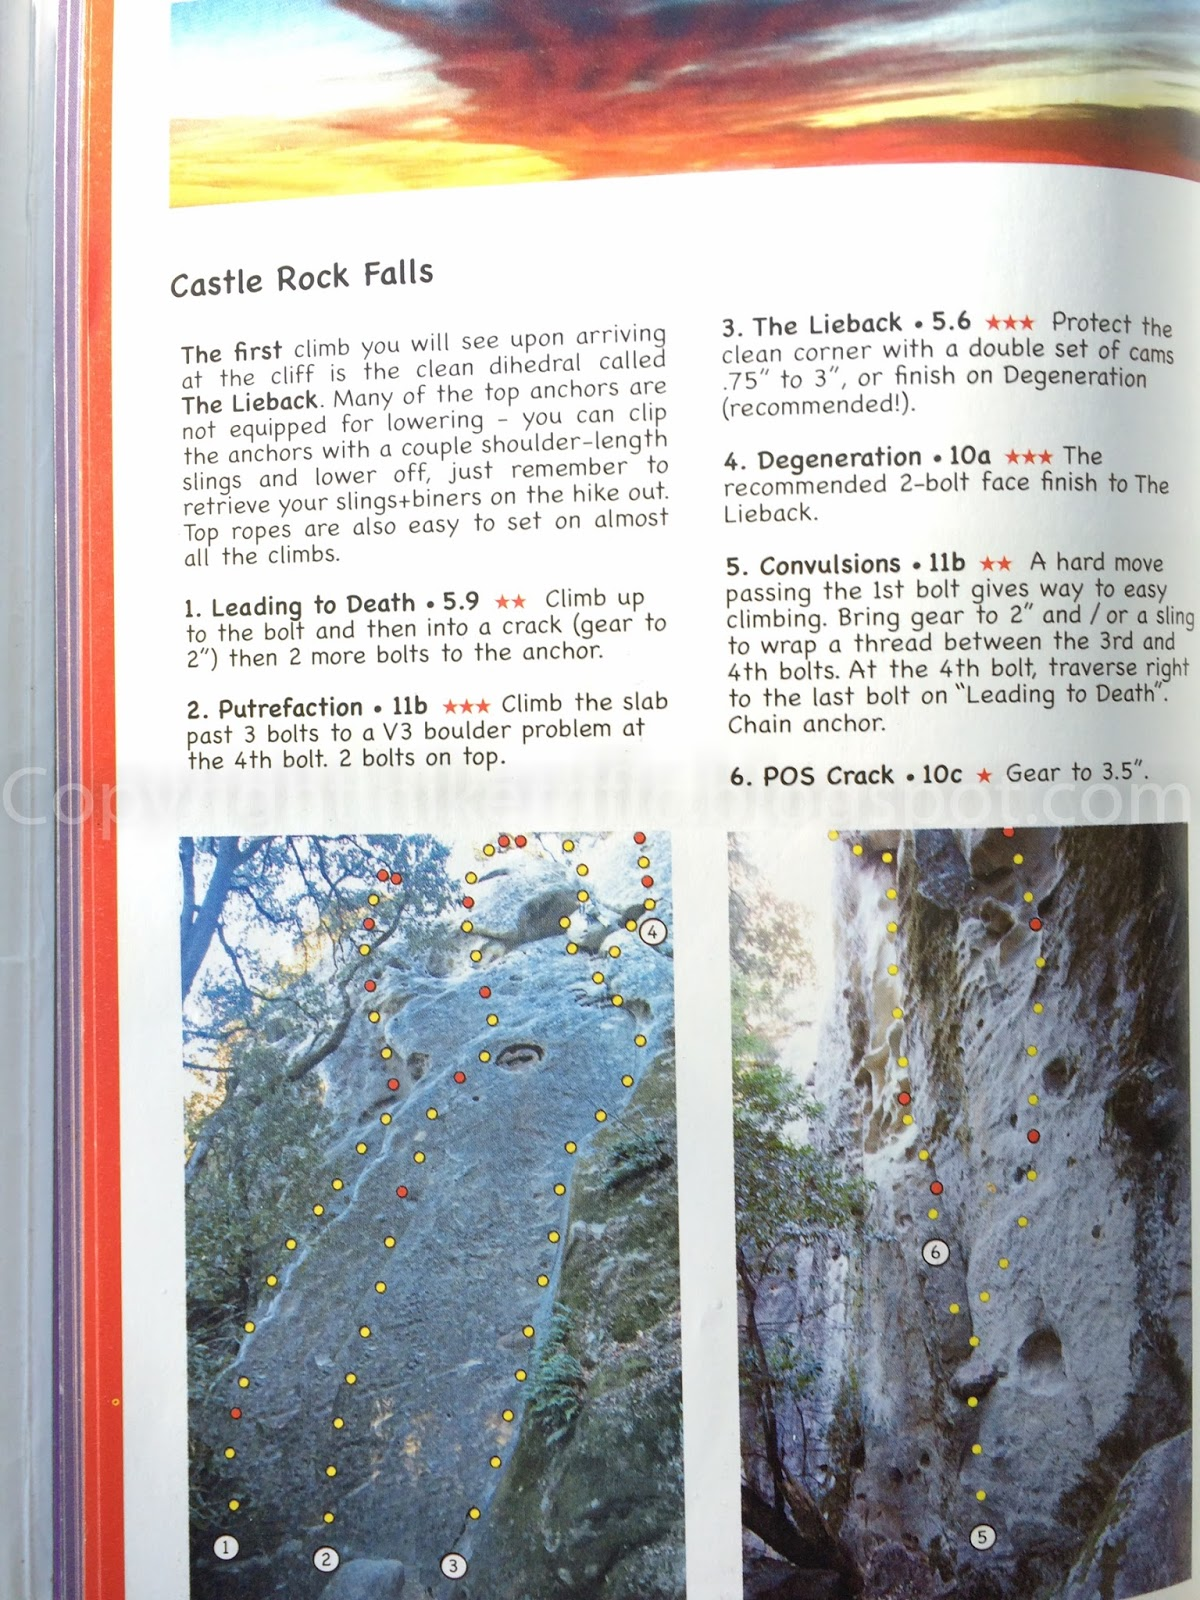 Return To Waterfall Cliff In Castle Rock State Park California